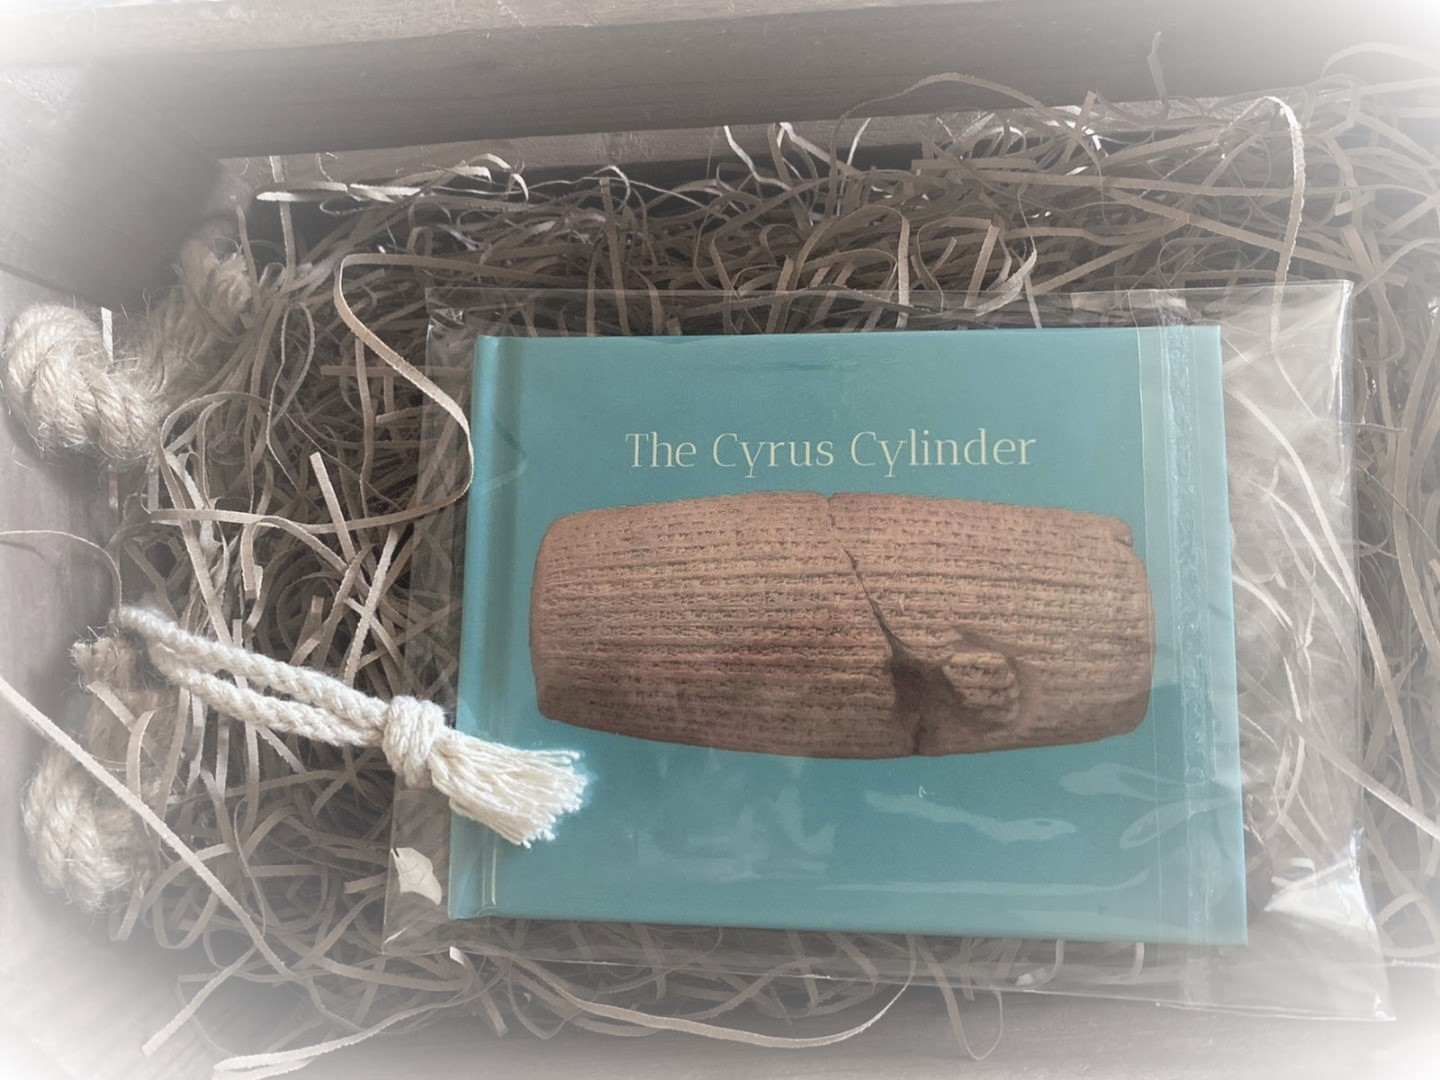 The Cyrus Cylinder Book